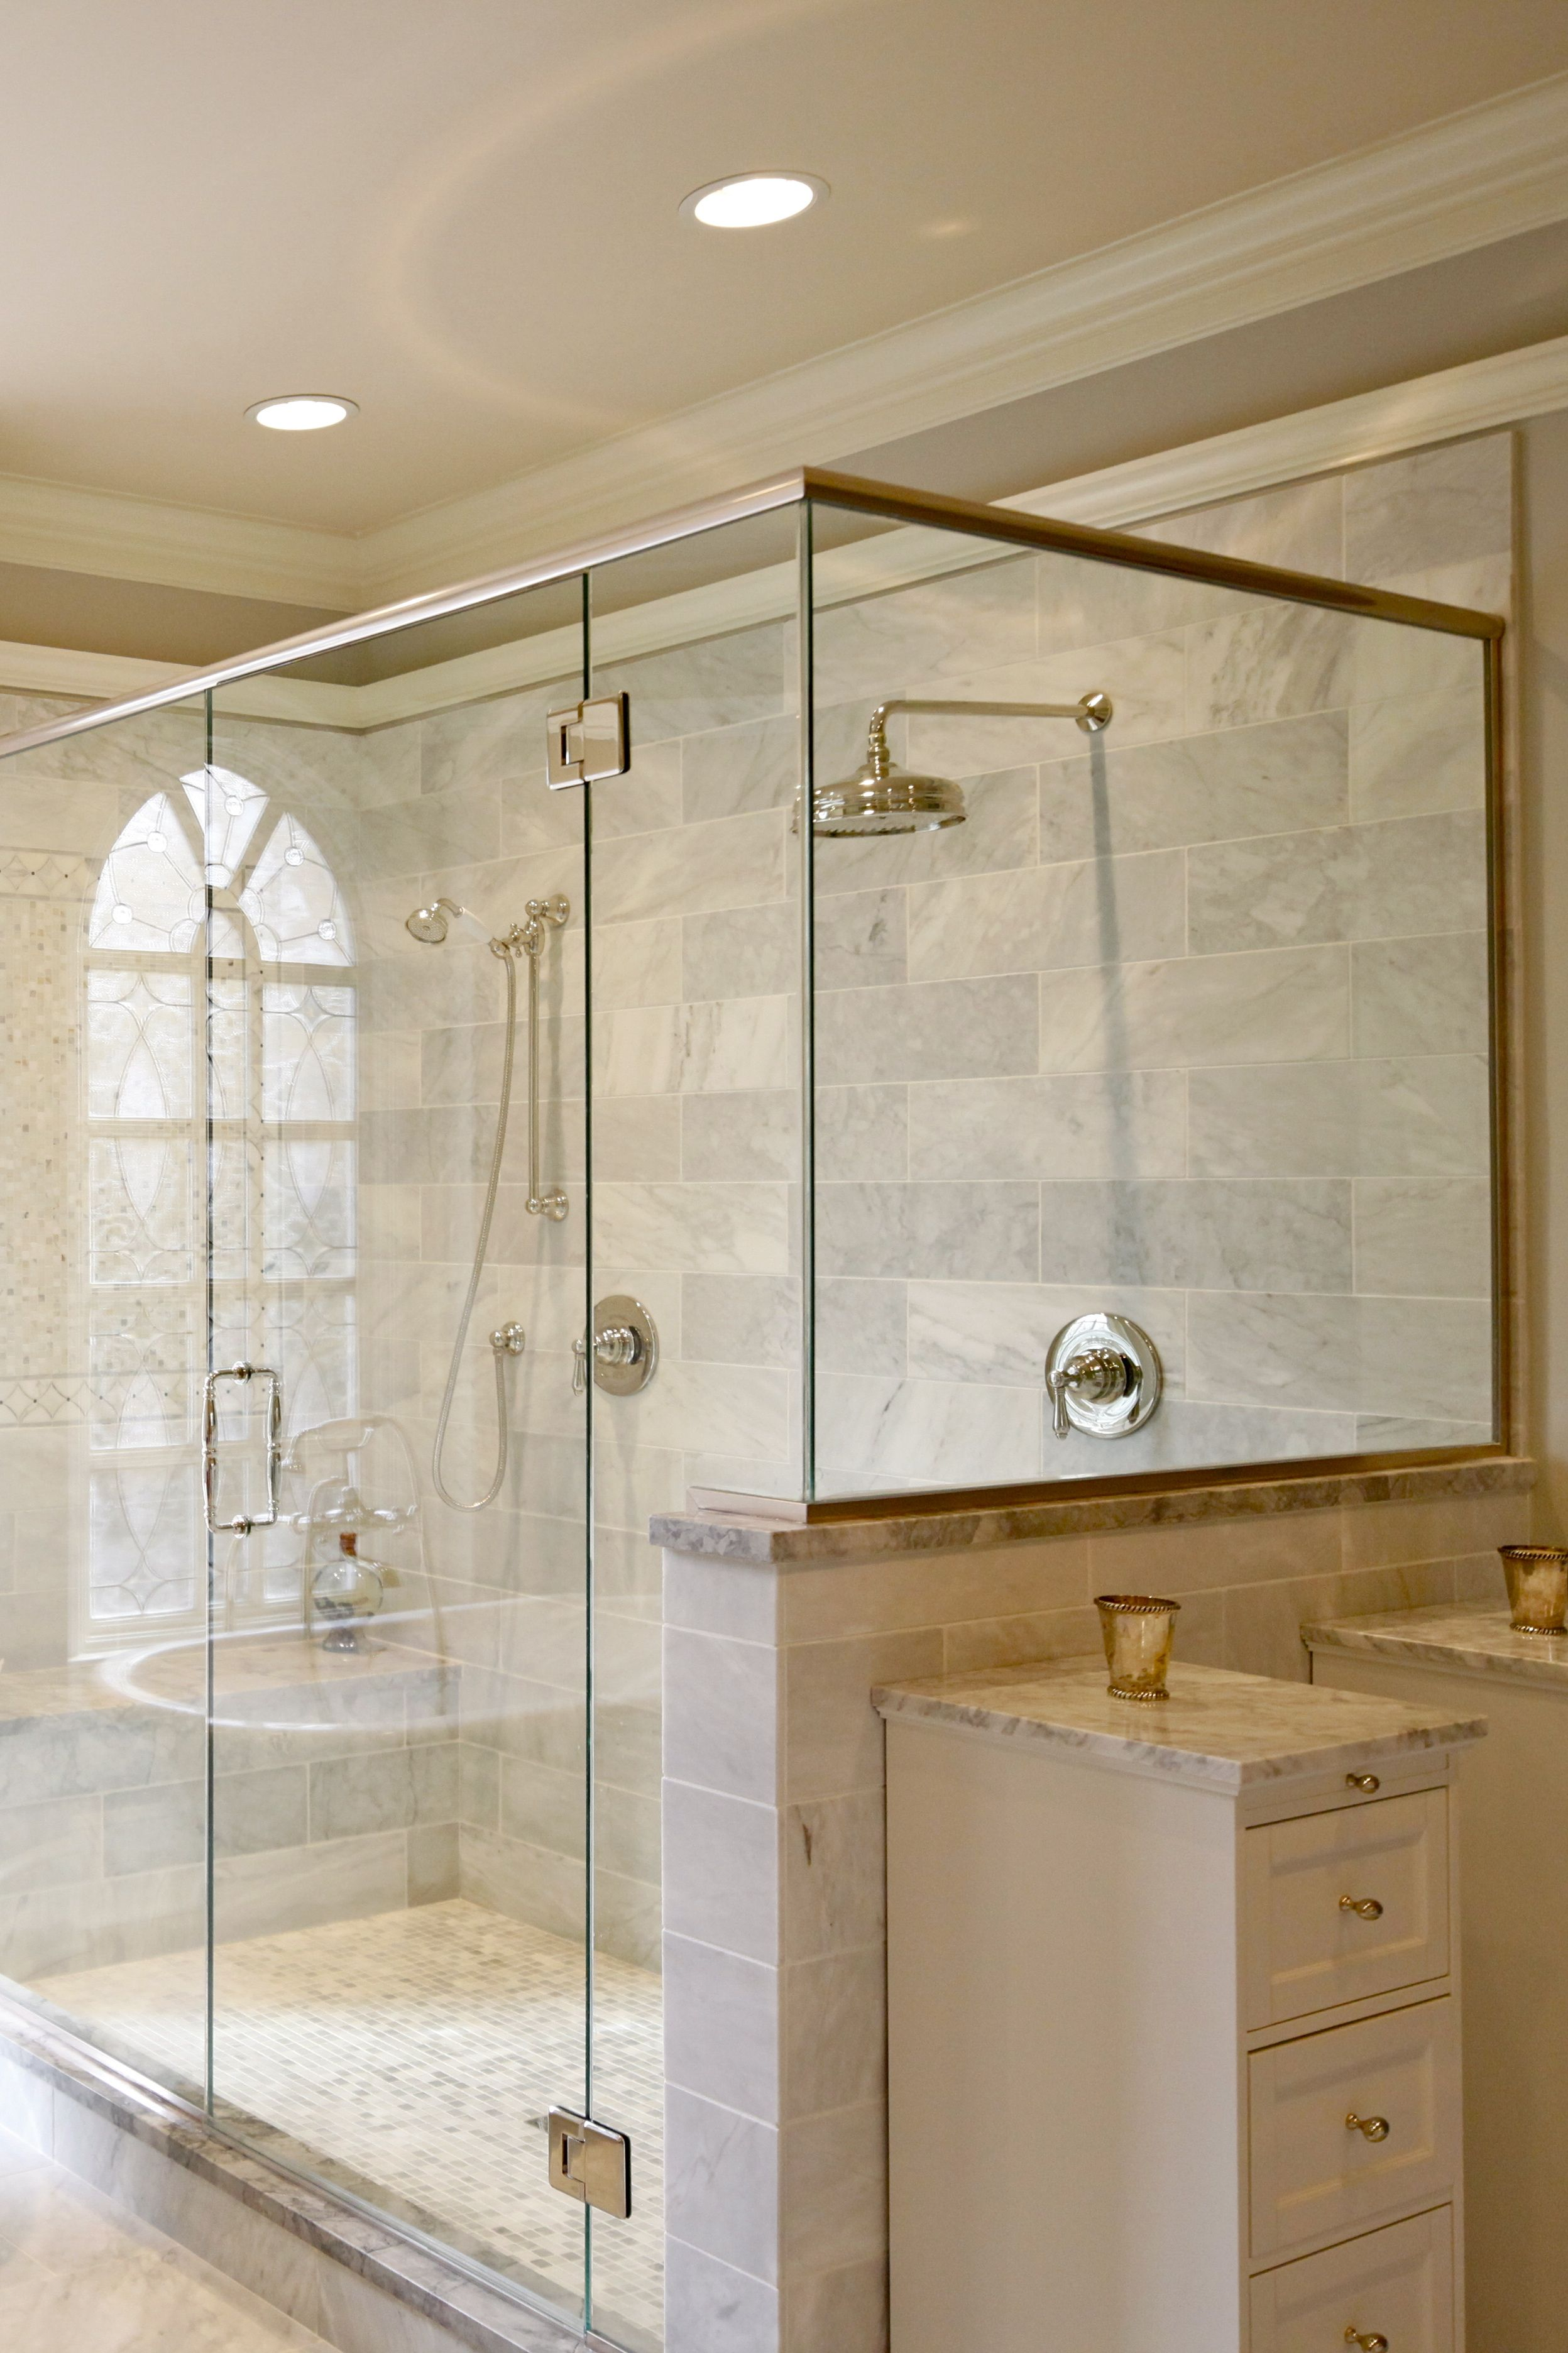 His And Her Shower Walk In Shower And Frameless Shower Top Bathroom Design Bathroom Remodeling Contractors Bathrooms Remodel